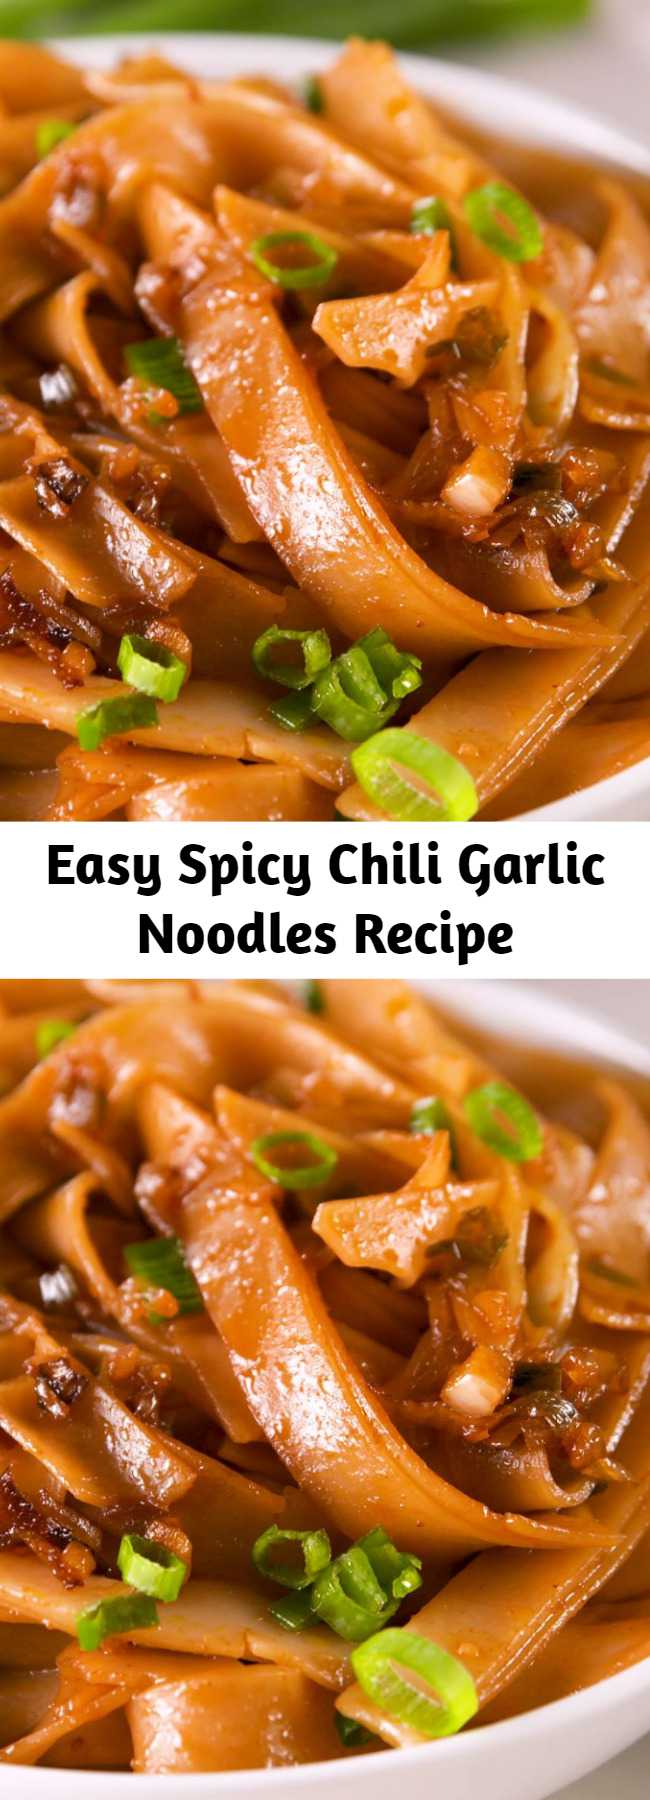 Easy Spicy Chili Garlic Noodles Recipe - The sauce for these noodles come together in less time than it takes your pasta water to boil. This dish is easy, fast, and spicy. Adjust the chili garlic sauce as you like, but we love the sweet heat of this dish as is. Prepare yourselves. #easyrecipe #food #noodles #asian #pasta